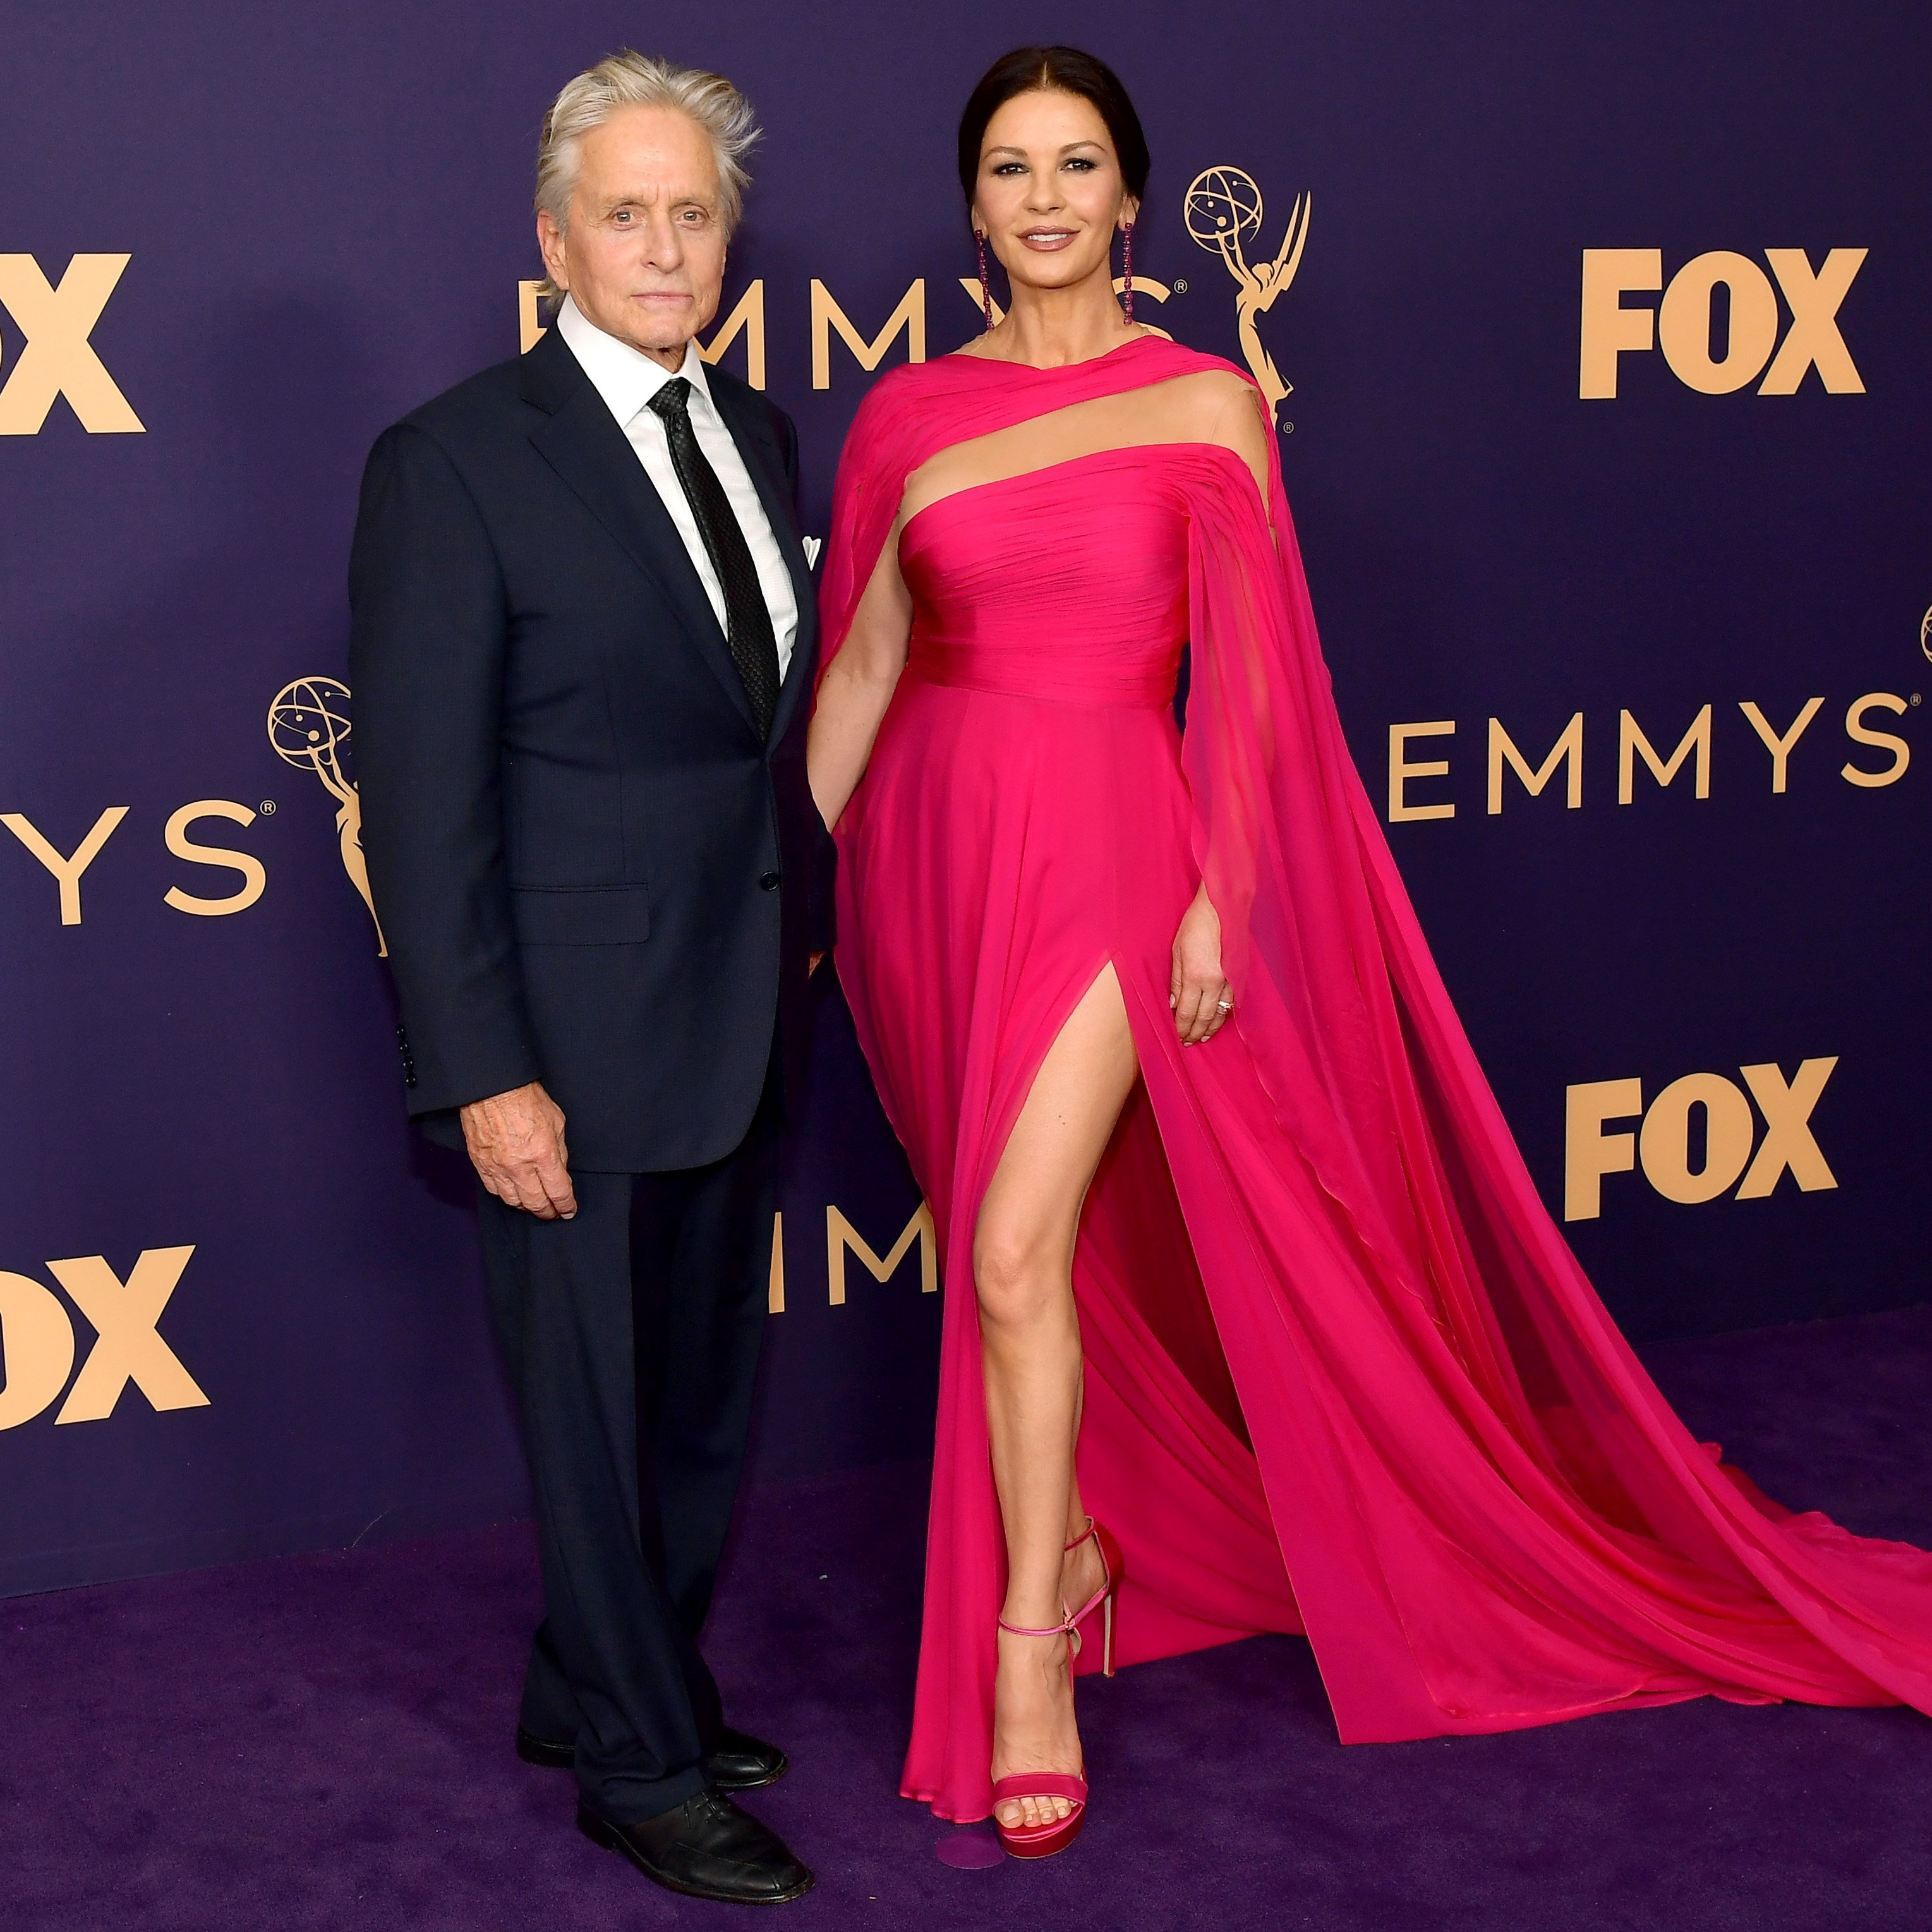 Michael Douglas and Catherine Zeta-Jones attends the 71st Emmy Awards in Los Angeles, California on September 22, 2019 | Photo: Getty Images